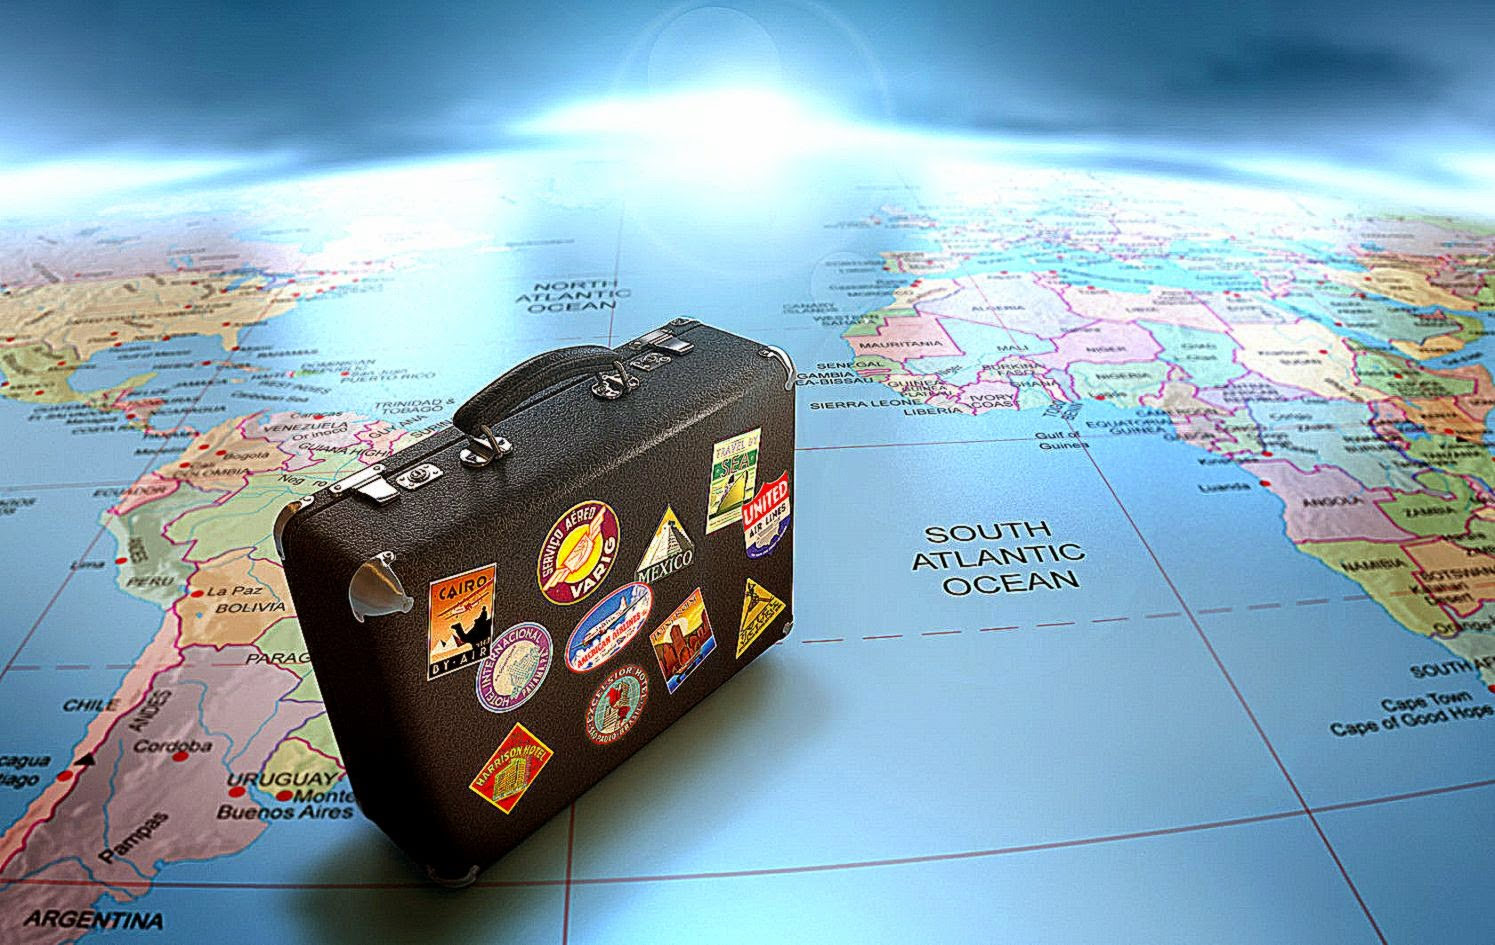 Travel All Around The World Wallpaper